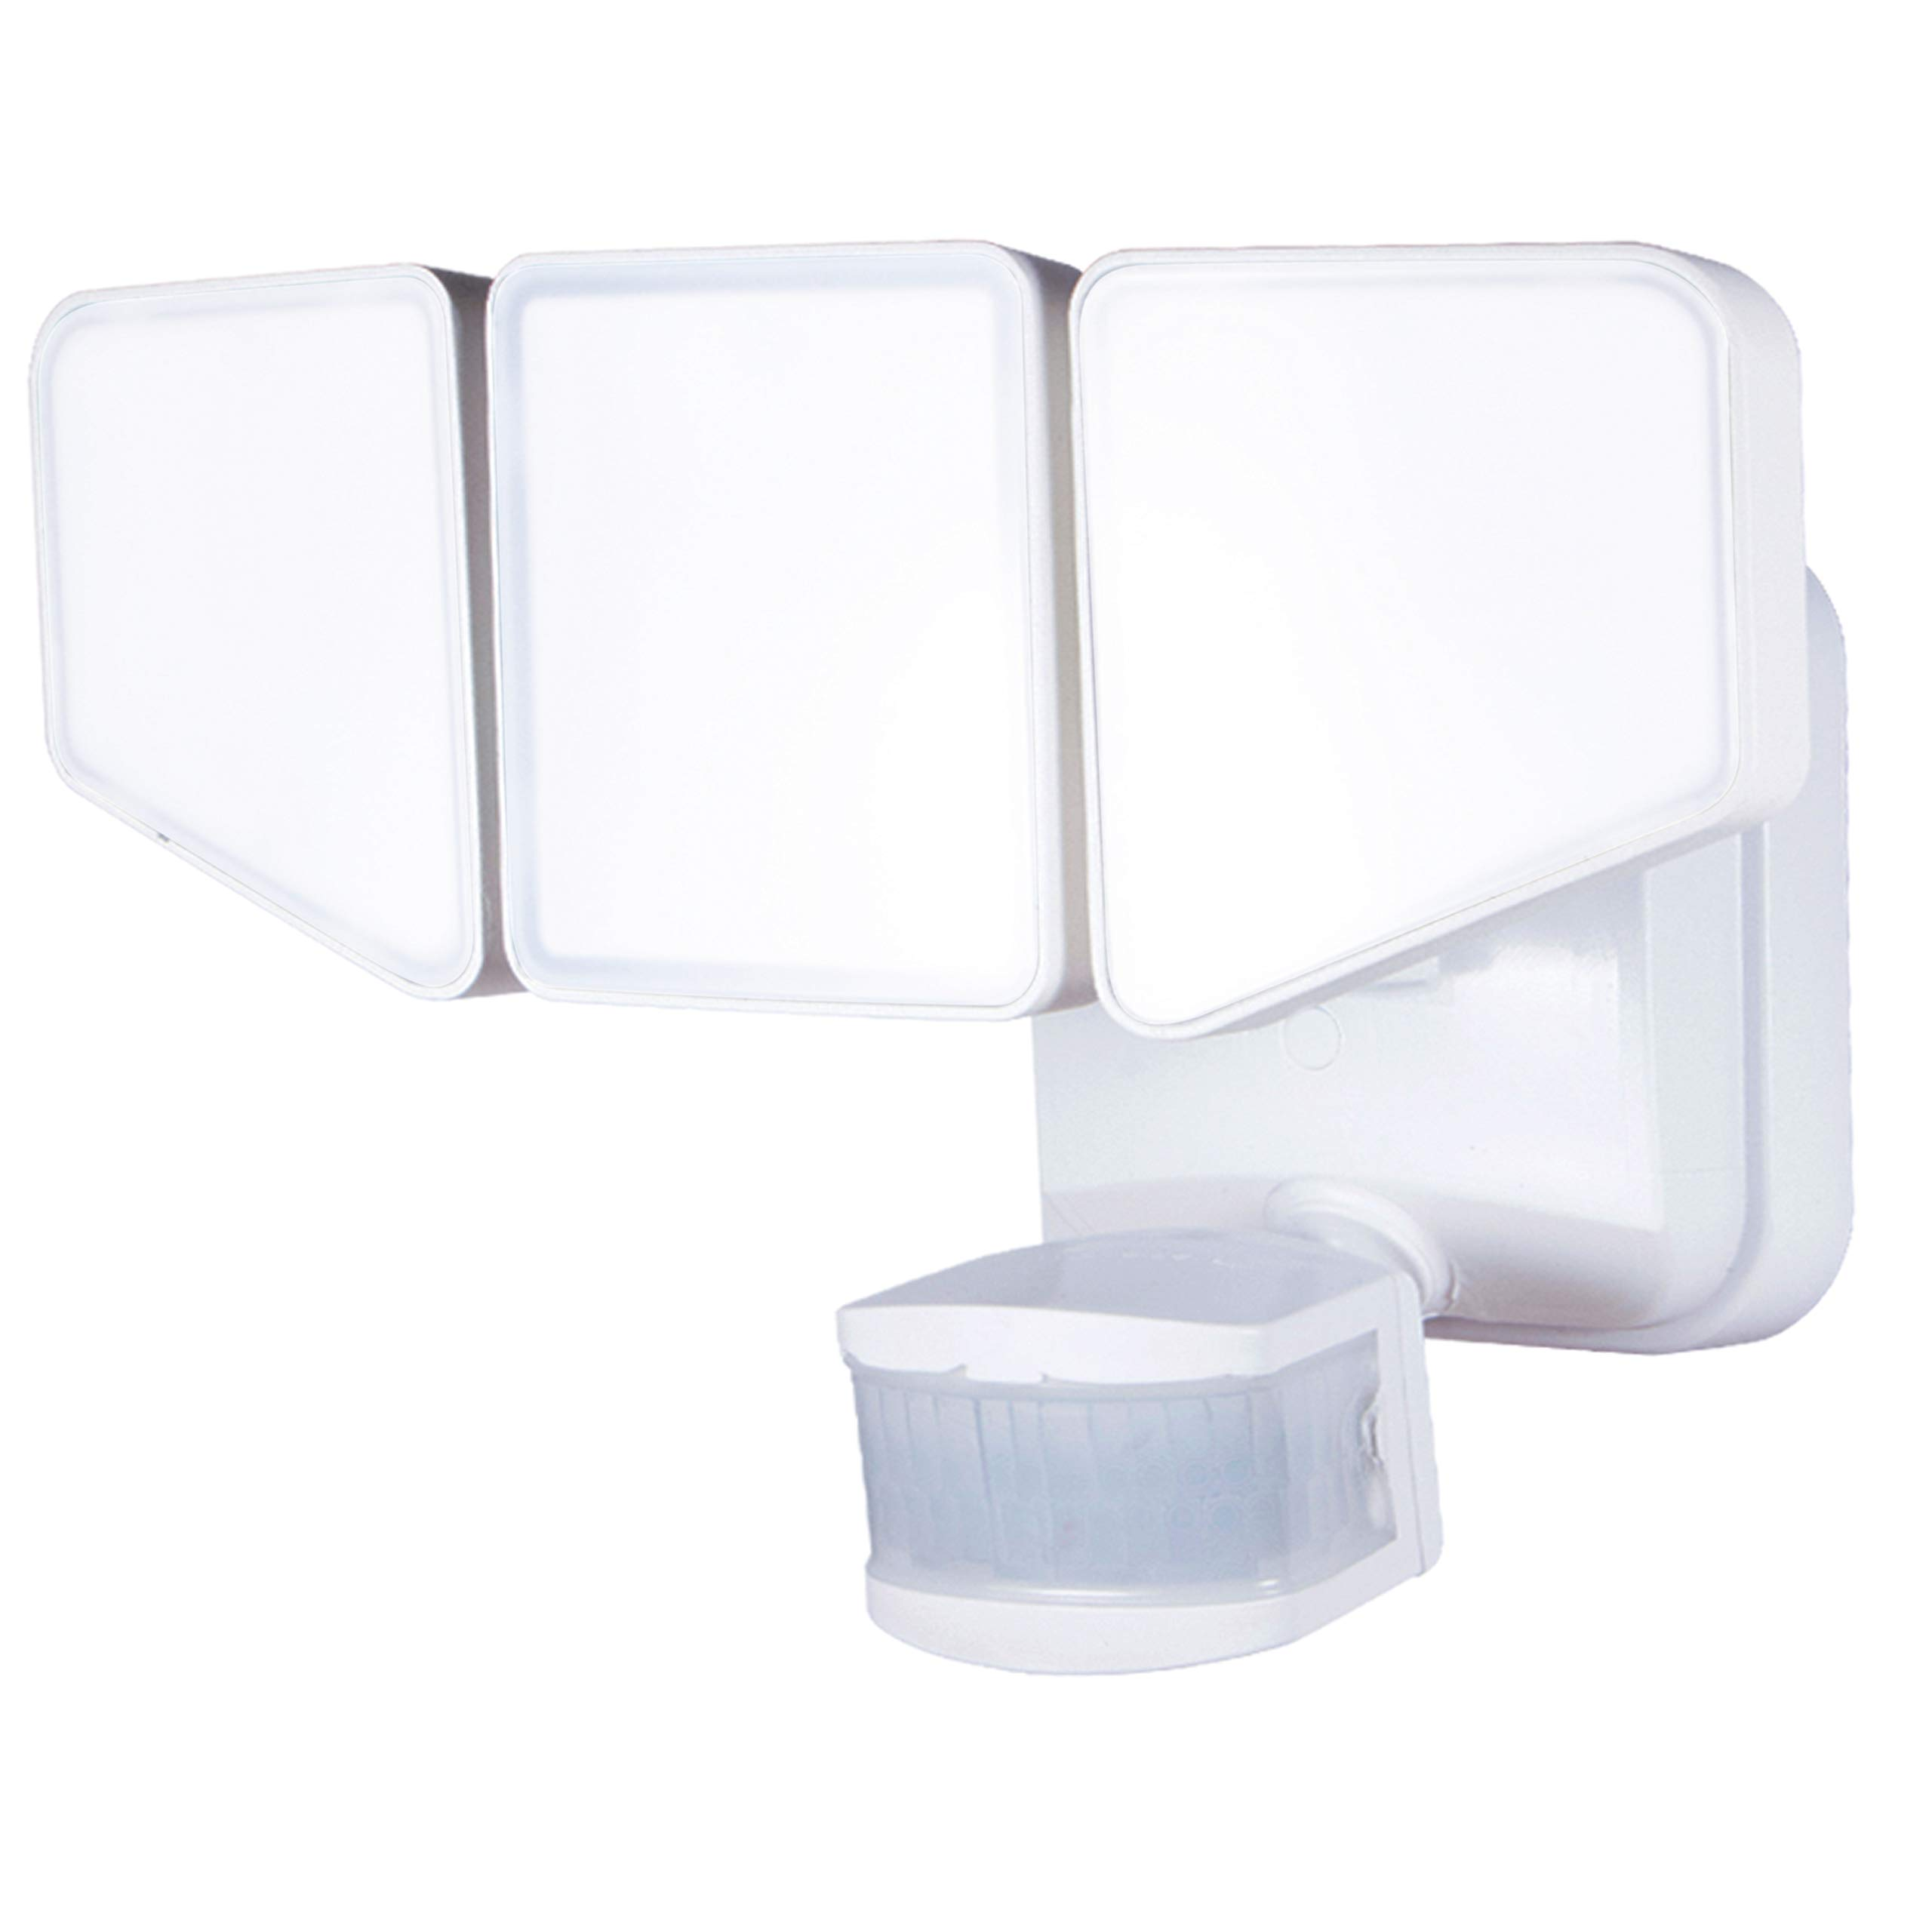 Enbrighten 40939, LED Outdoor Flood Security Light with Motion Sensor and Accent Light, Up to 3100 Lumens, 43W, Three Adjustable Heads, Selectable Accent Light Color 2200K-5000K, White Finish